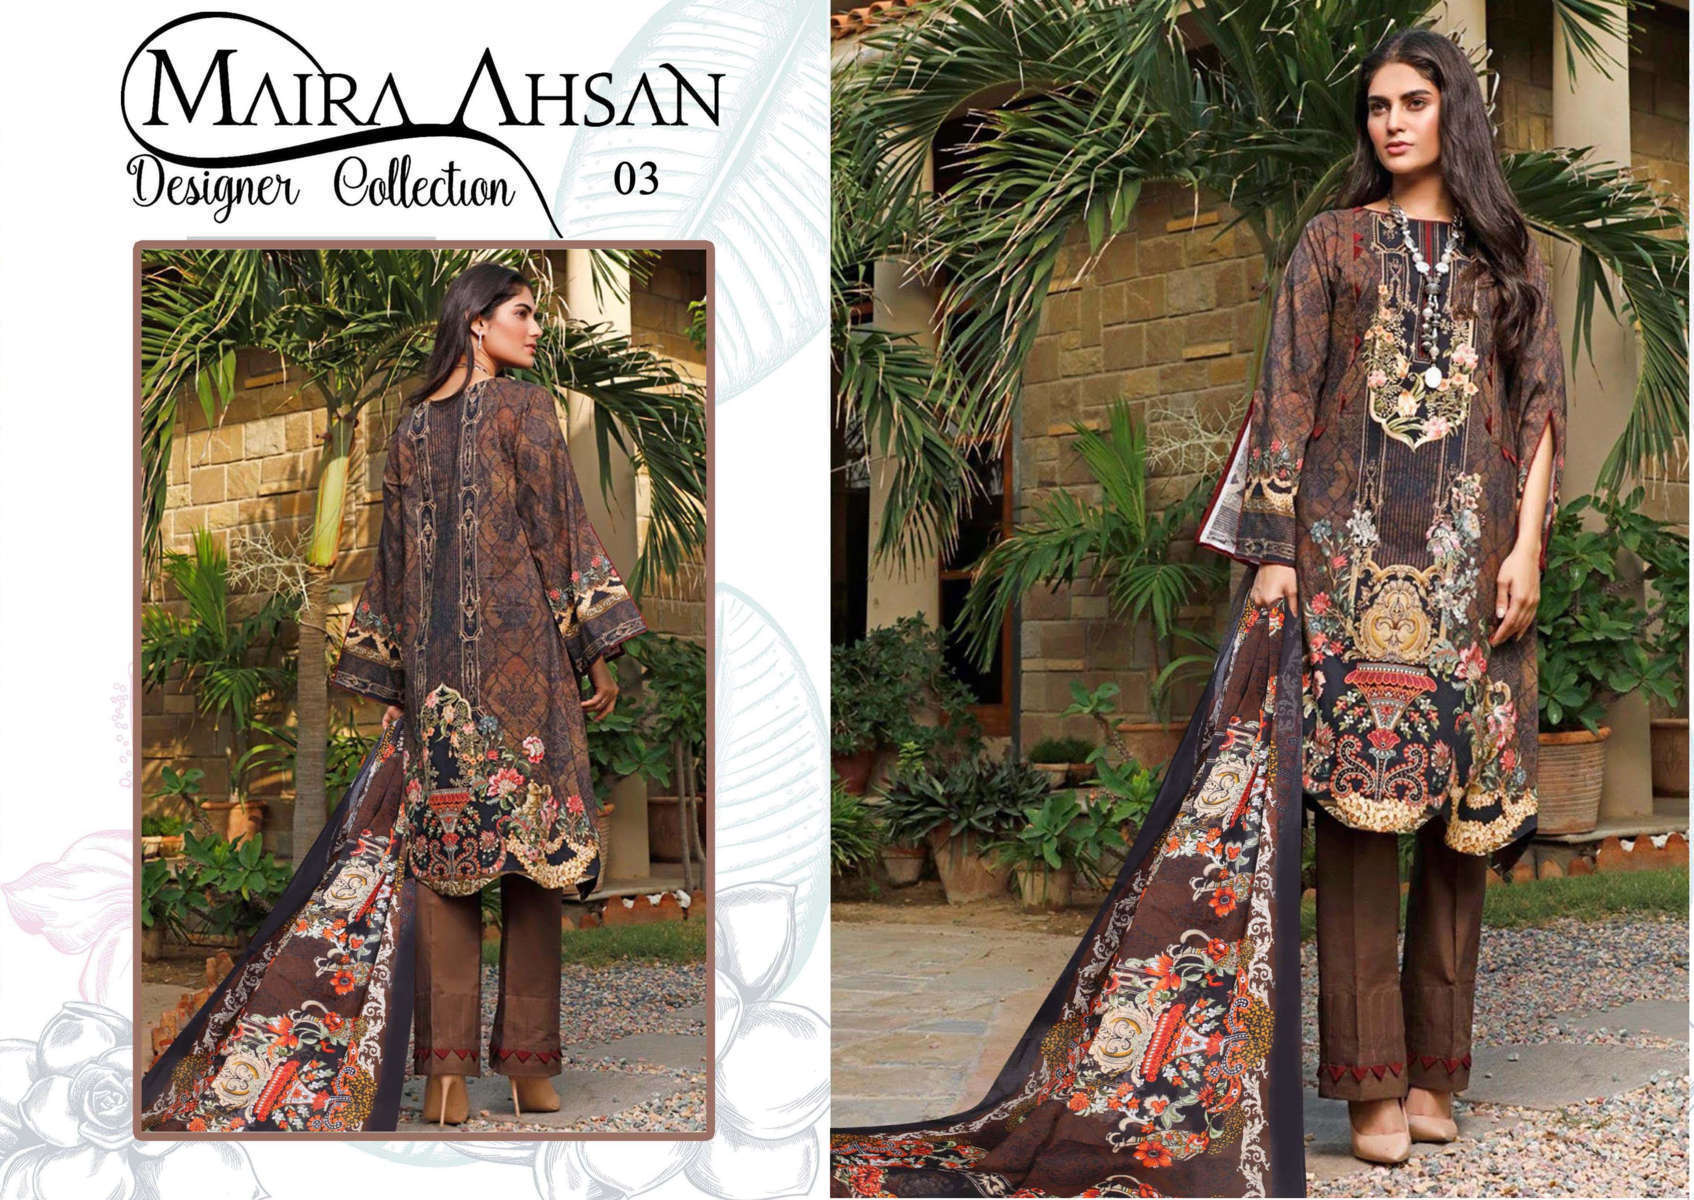 Maira Ahsan Designer Collection Vol 1 Salwar Suit Wholesale Catalog 10 Pcs 4 - Maira Ahsan Designer Collection Vol 1 Salwar Suit Wholesale Catalog 10 Pcs